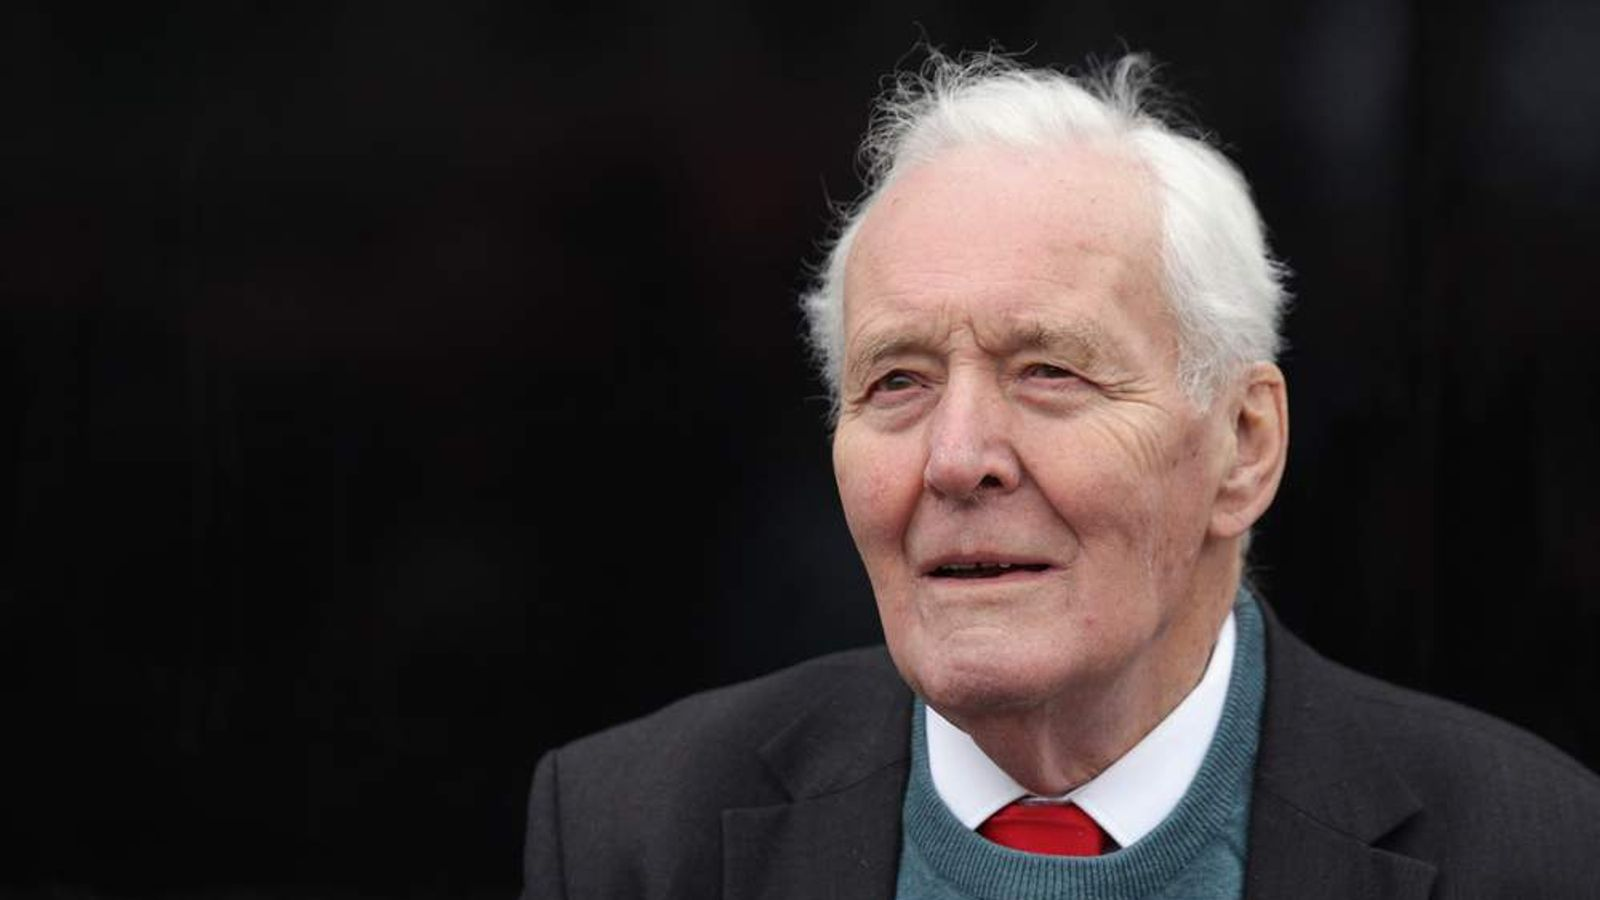 Former Labour MP Tony Benn has contributed money to Julian Assange's bail